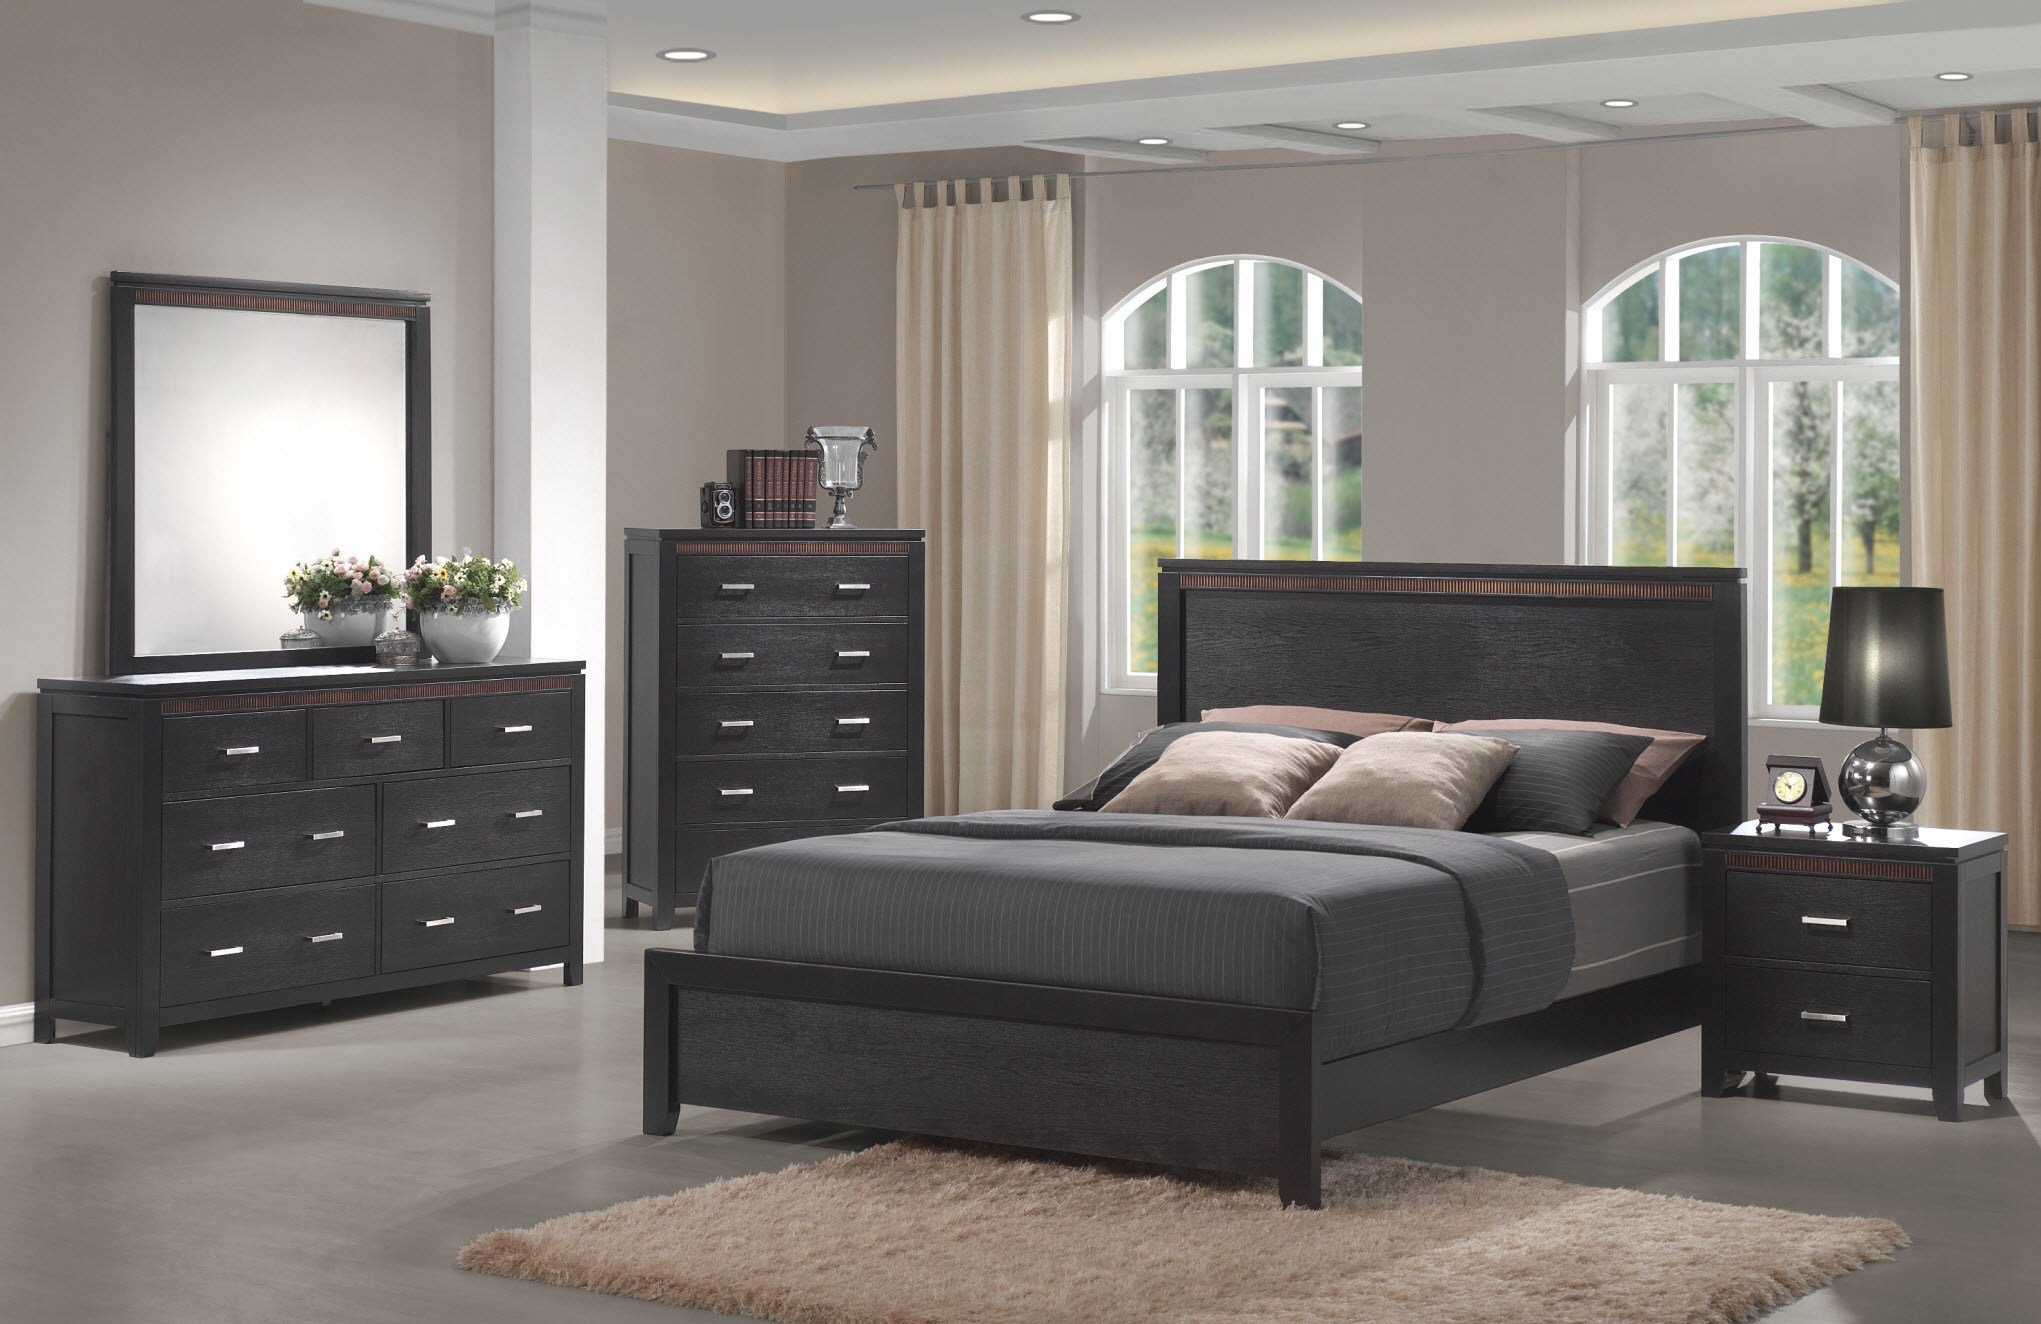 Best Clearance Furniture Austin Tx Bobs Bedroom Set Reviews With Pictures